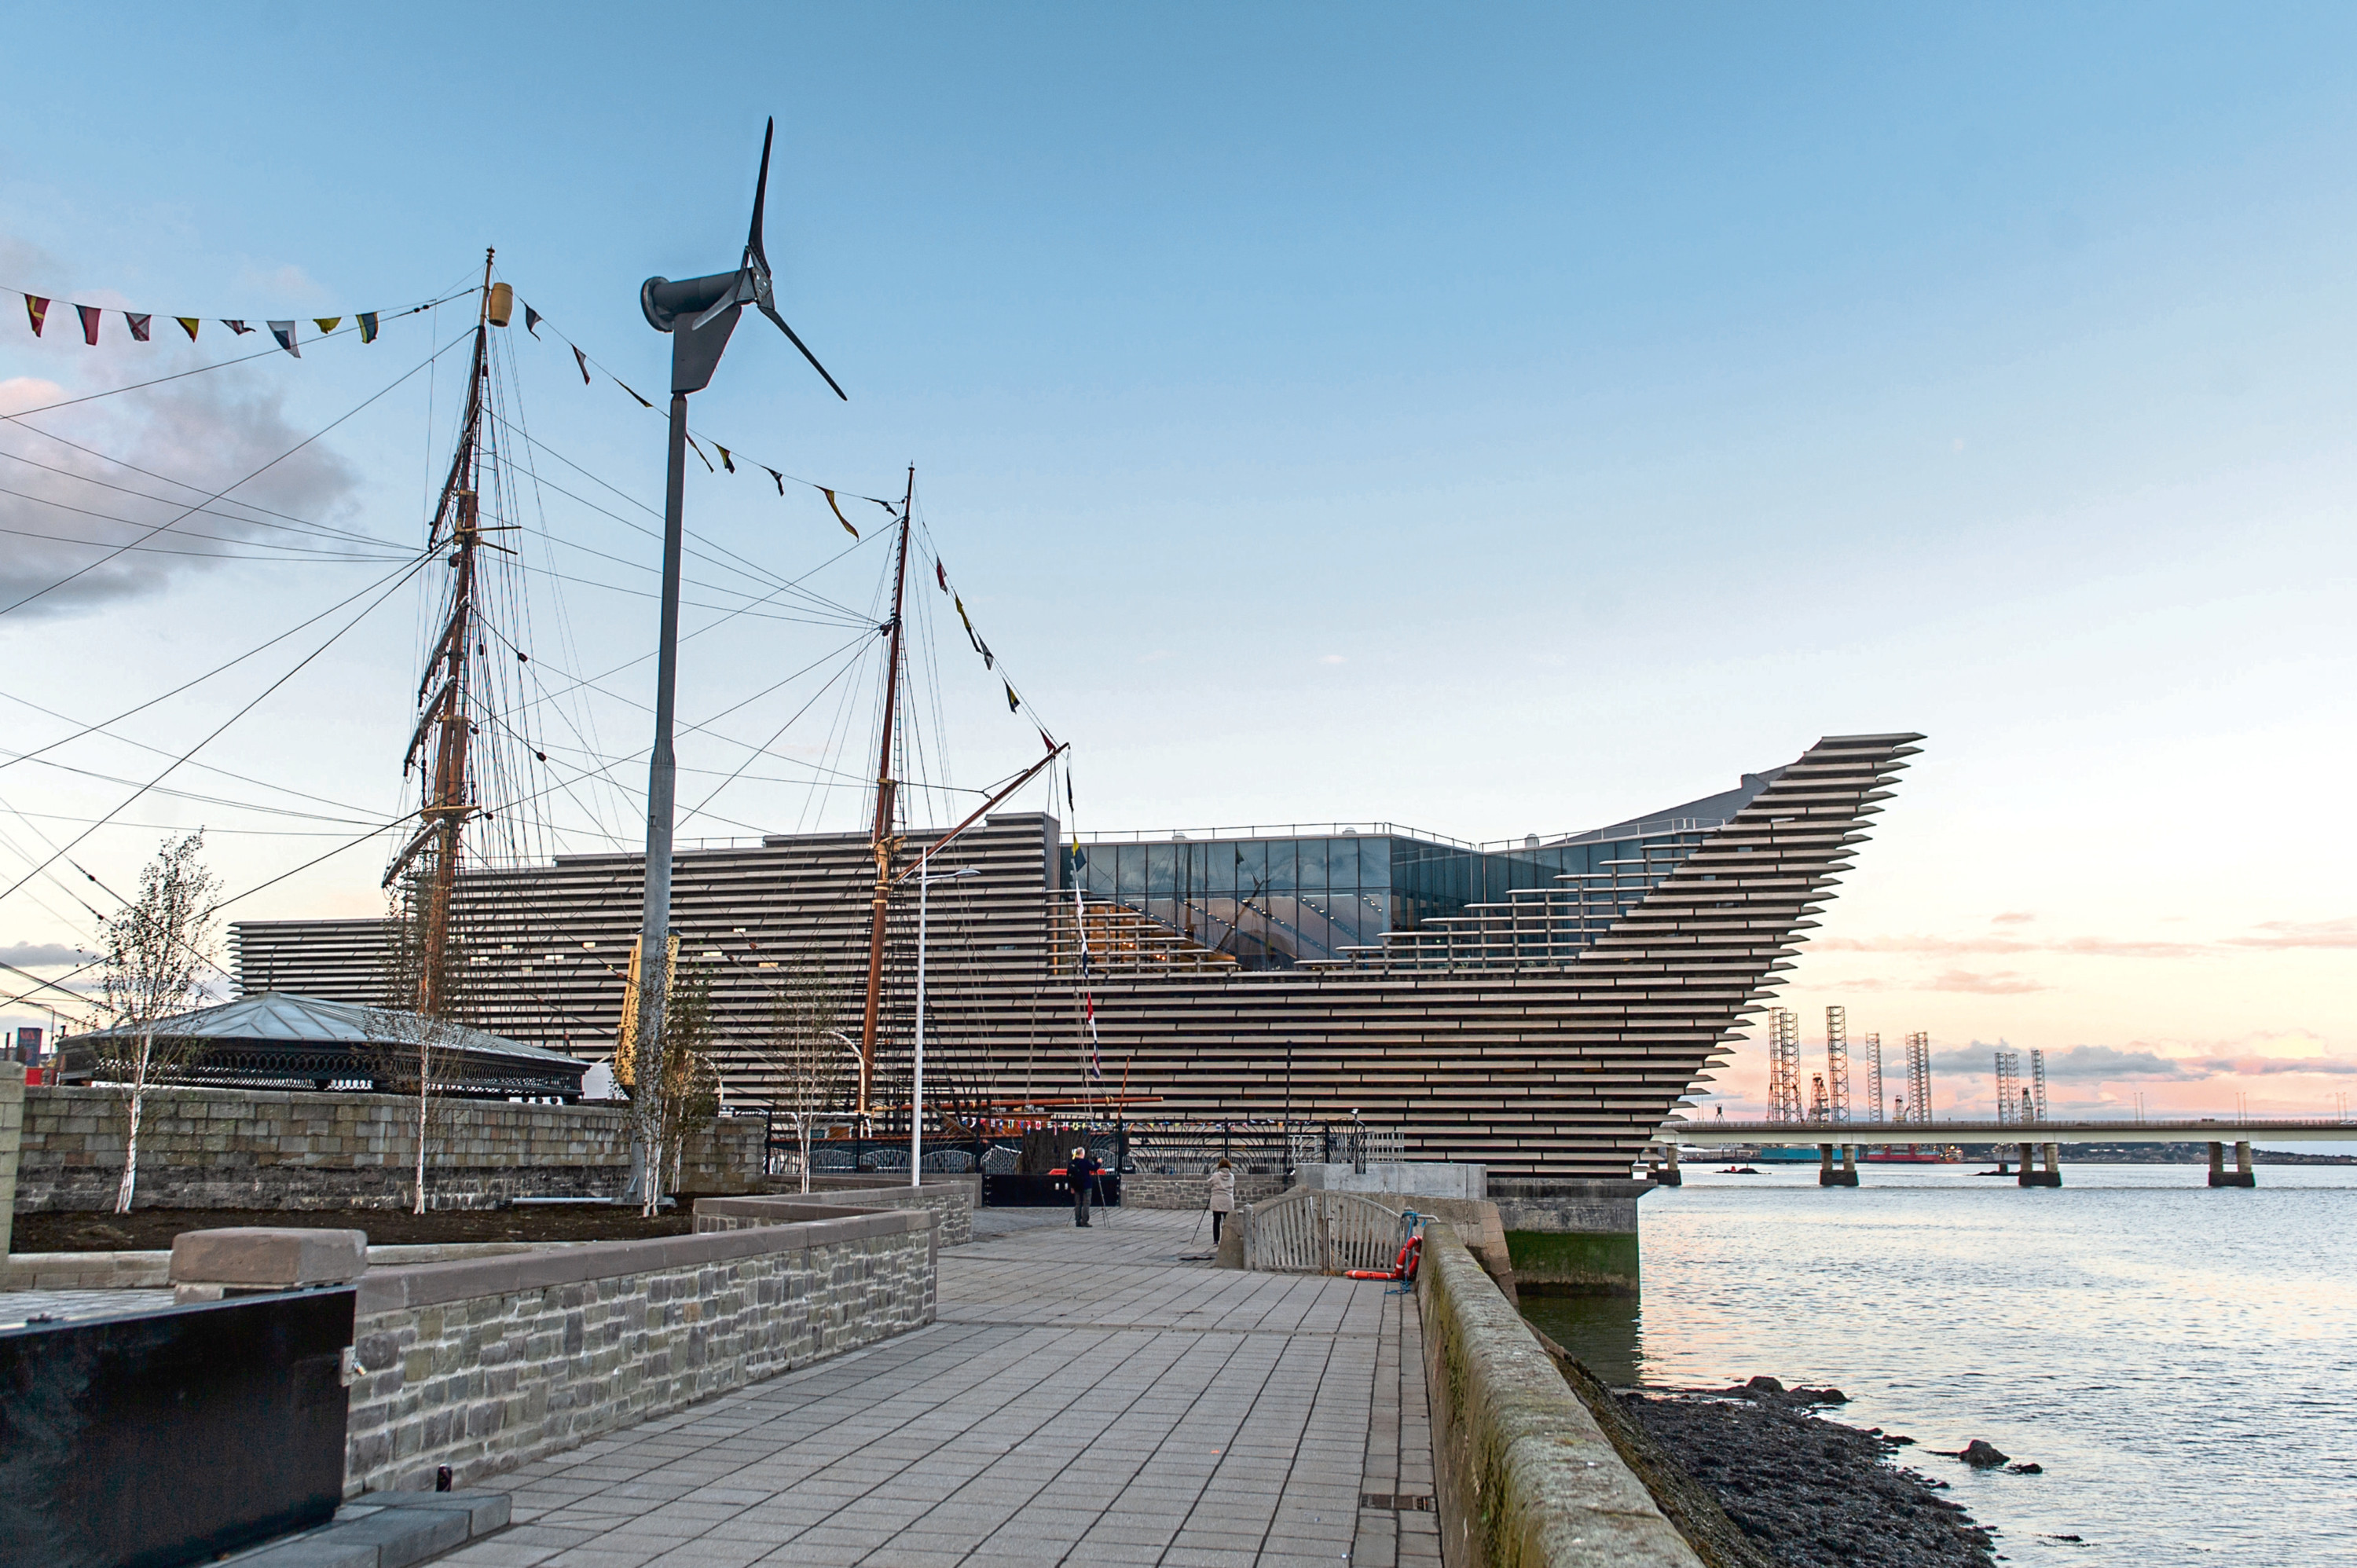 The V&A on Dundee Waterfront